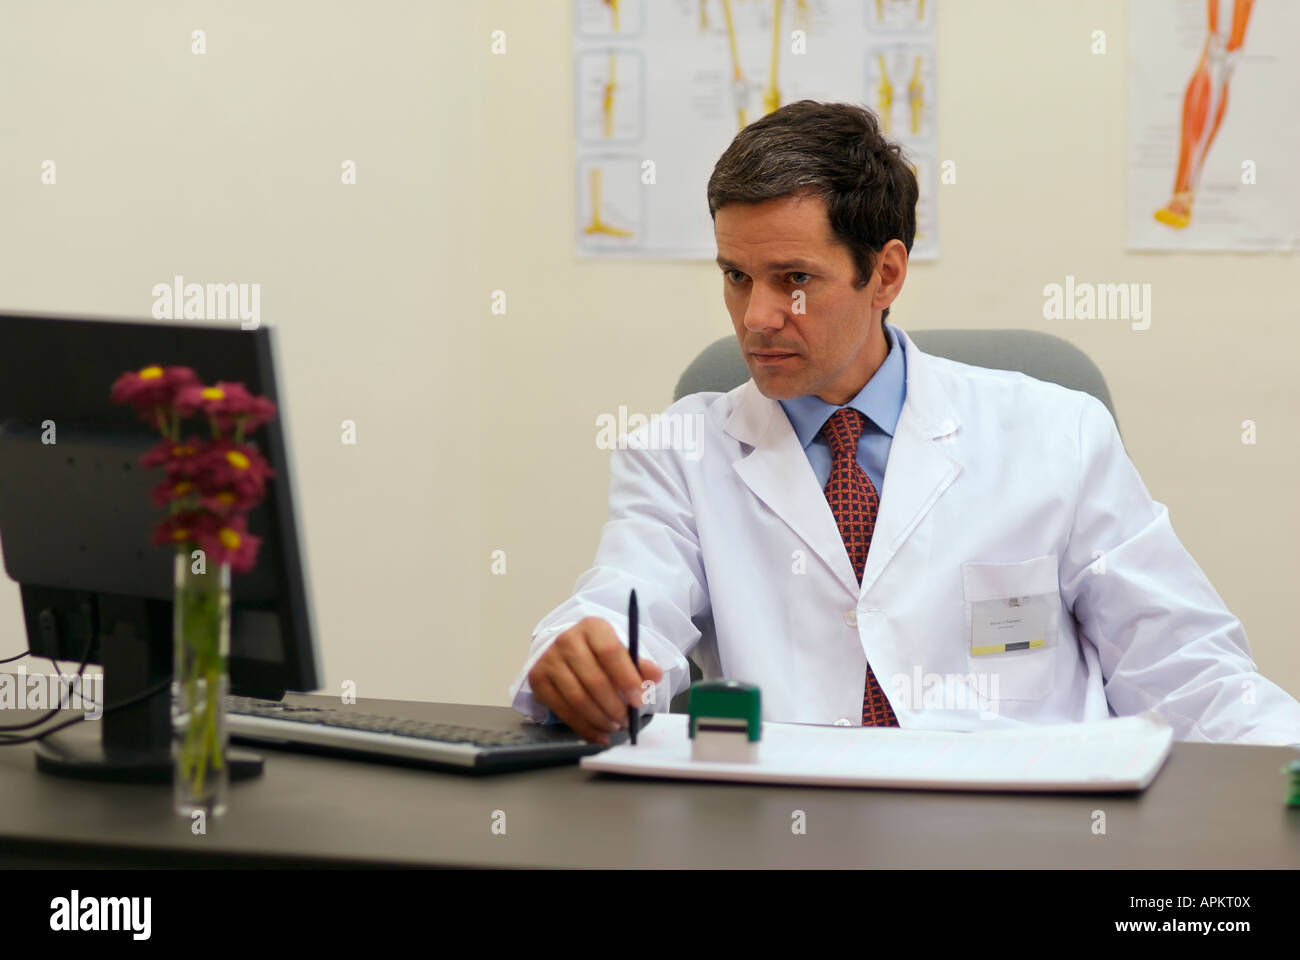 Doctor in an office Stock Photo